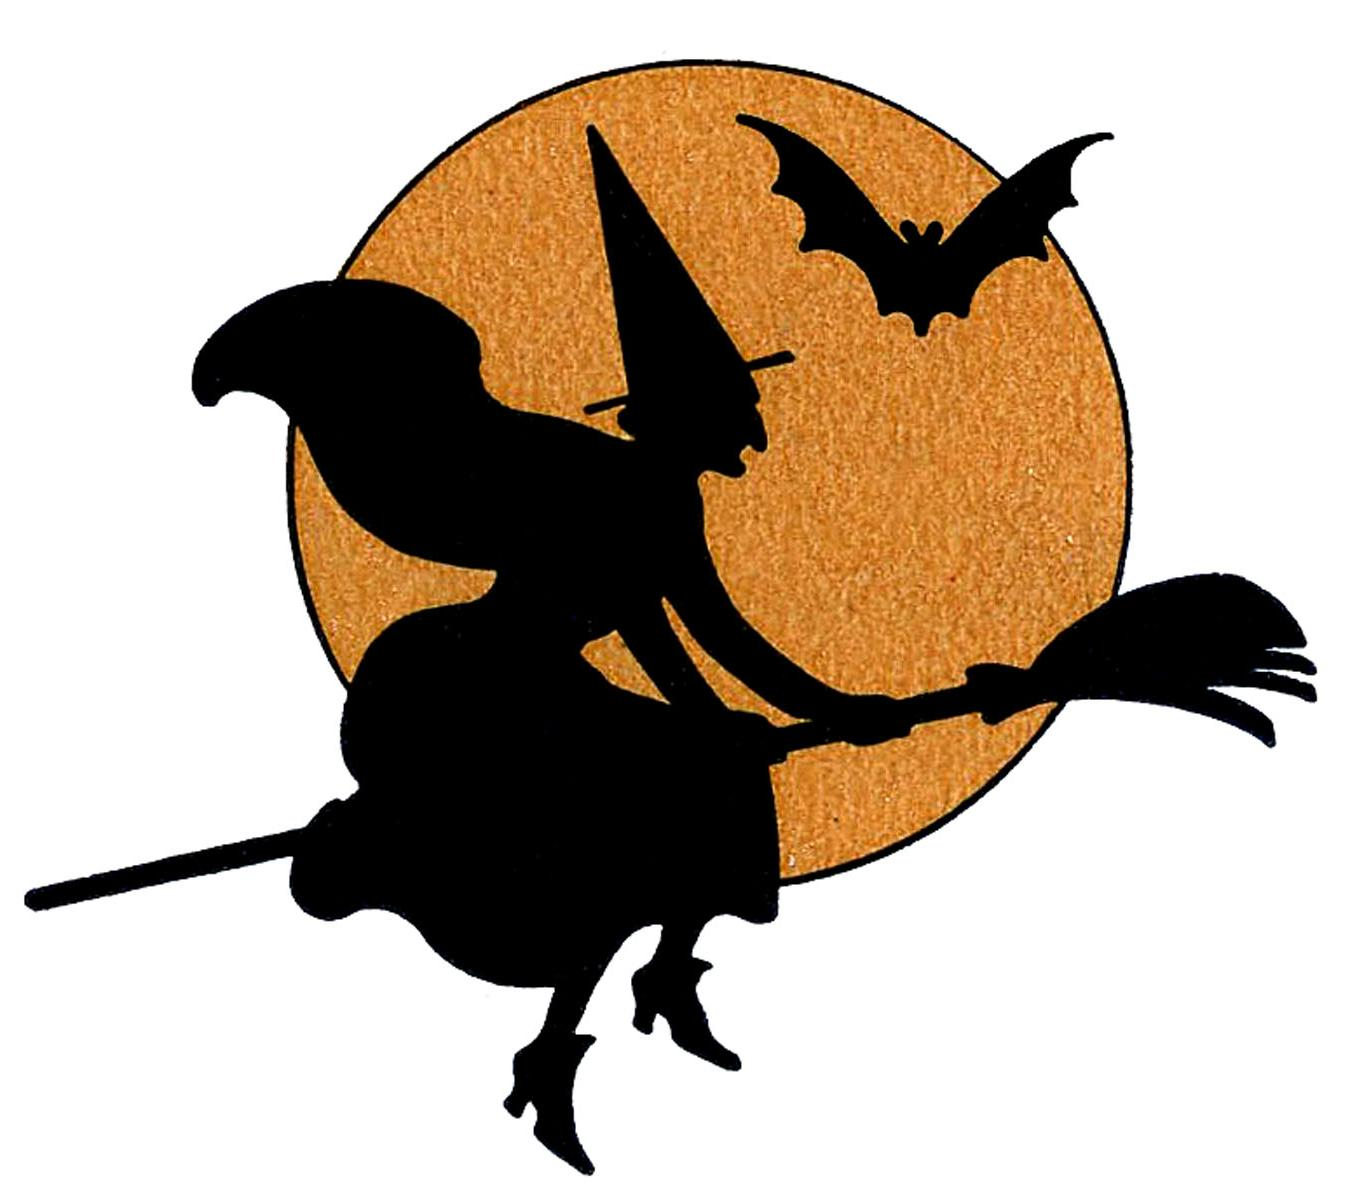 1350x1202 Hd Silhouette Halloween Moon Clip Art Image Vector Graphic Images